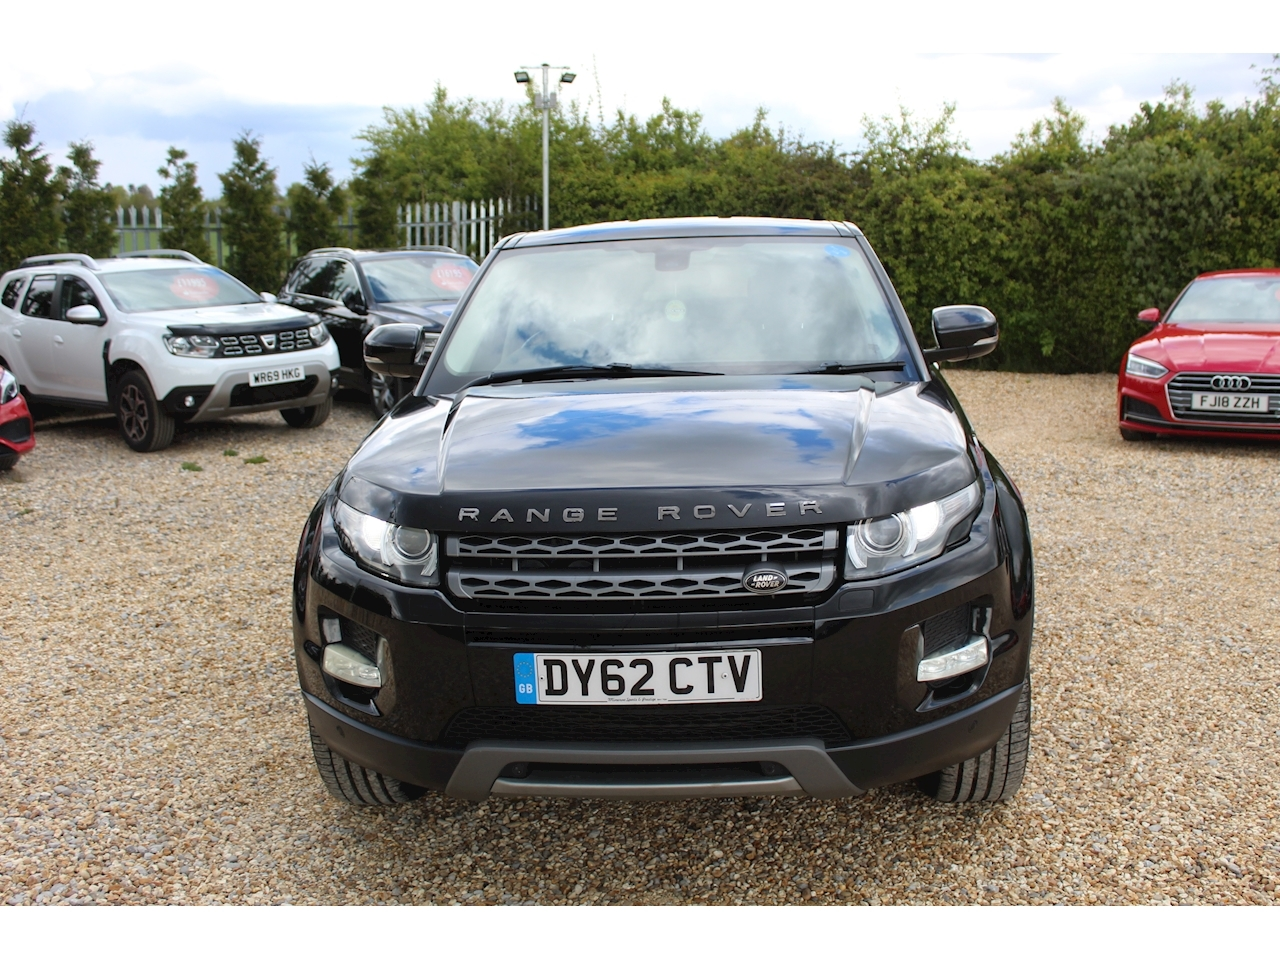 Range Rover Evoque ED4 Pure Tech SUV 2.2 Manual Diesel